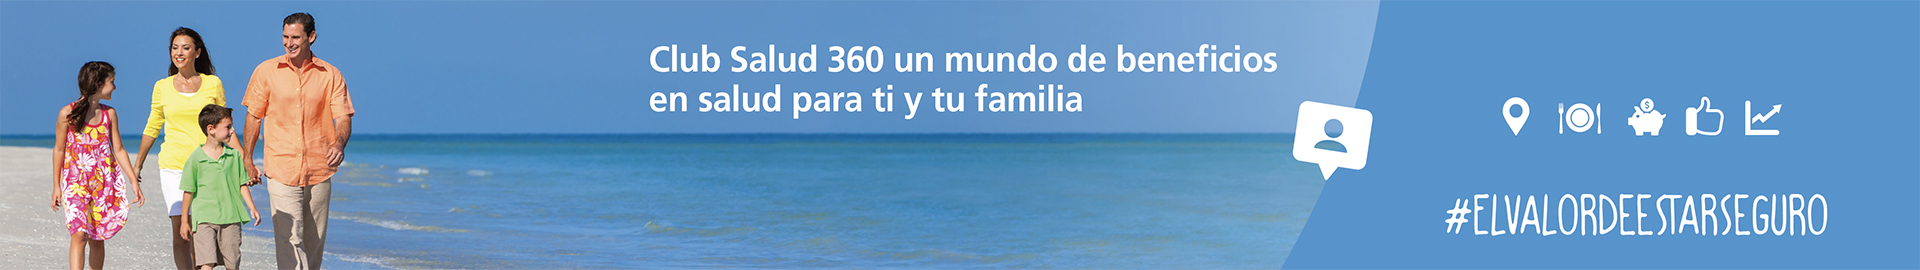 https://clubsalud360.cl/Club Salud 360